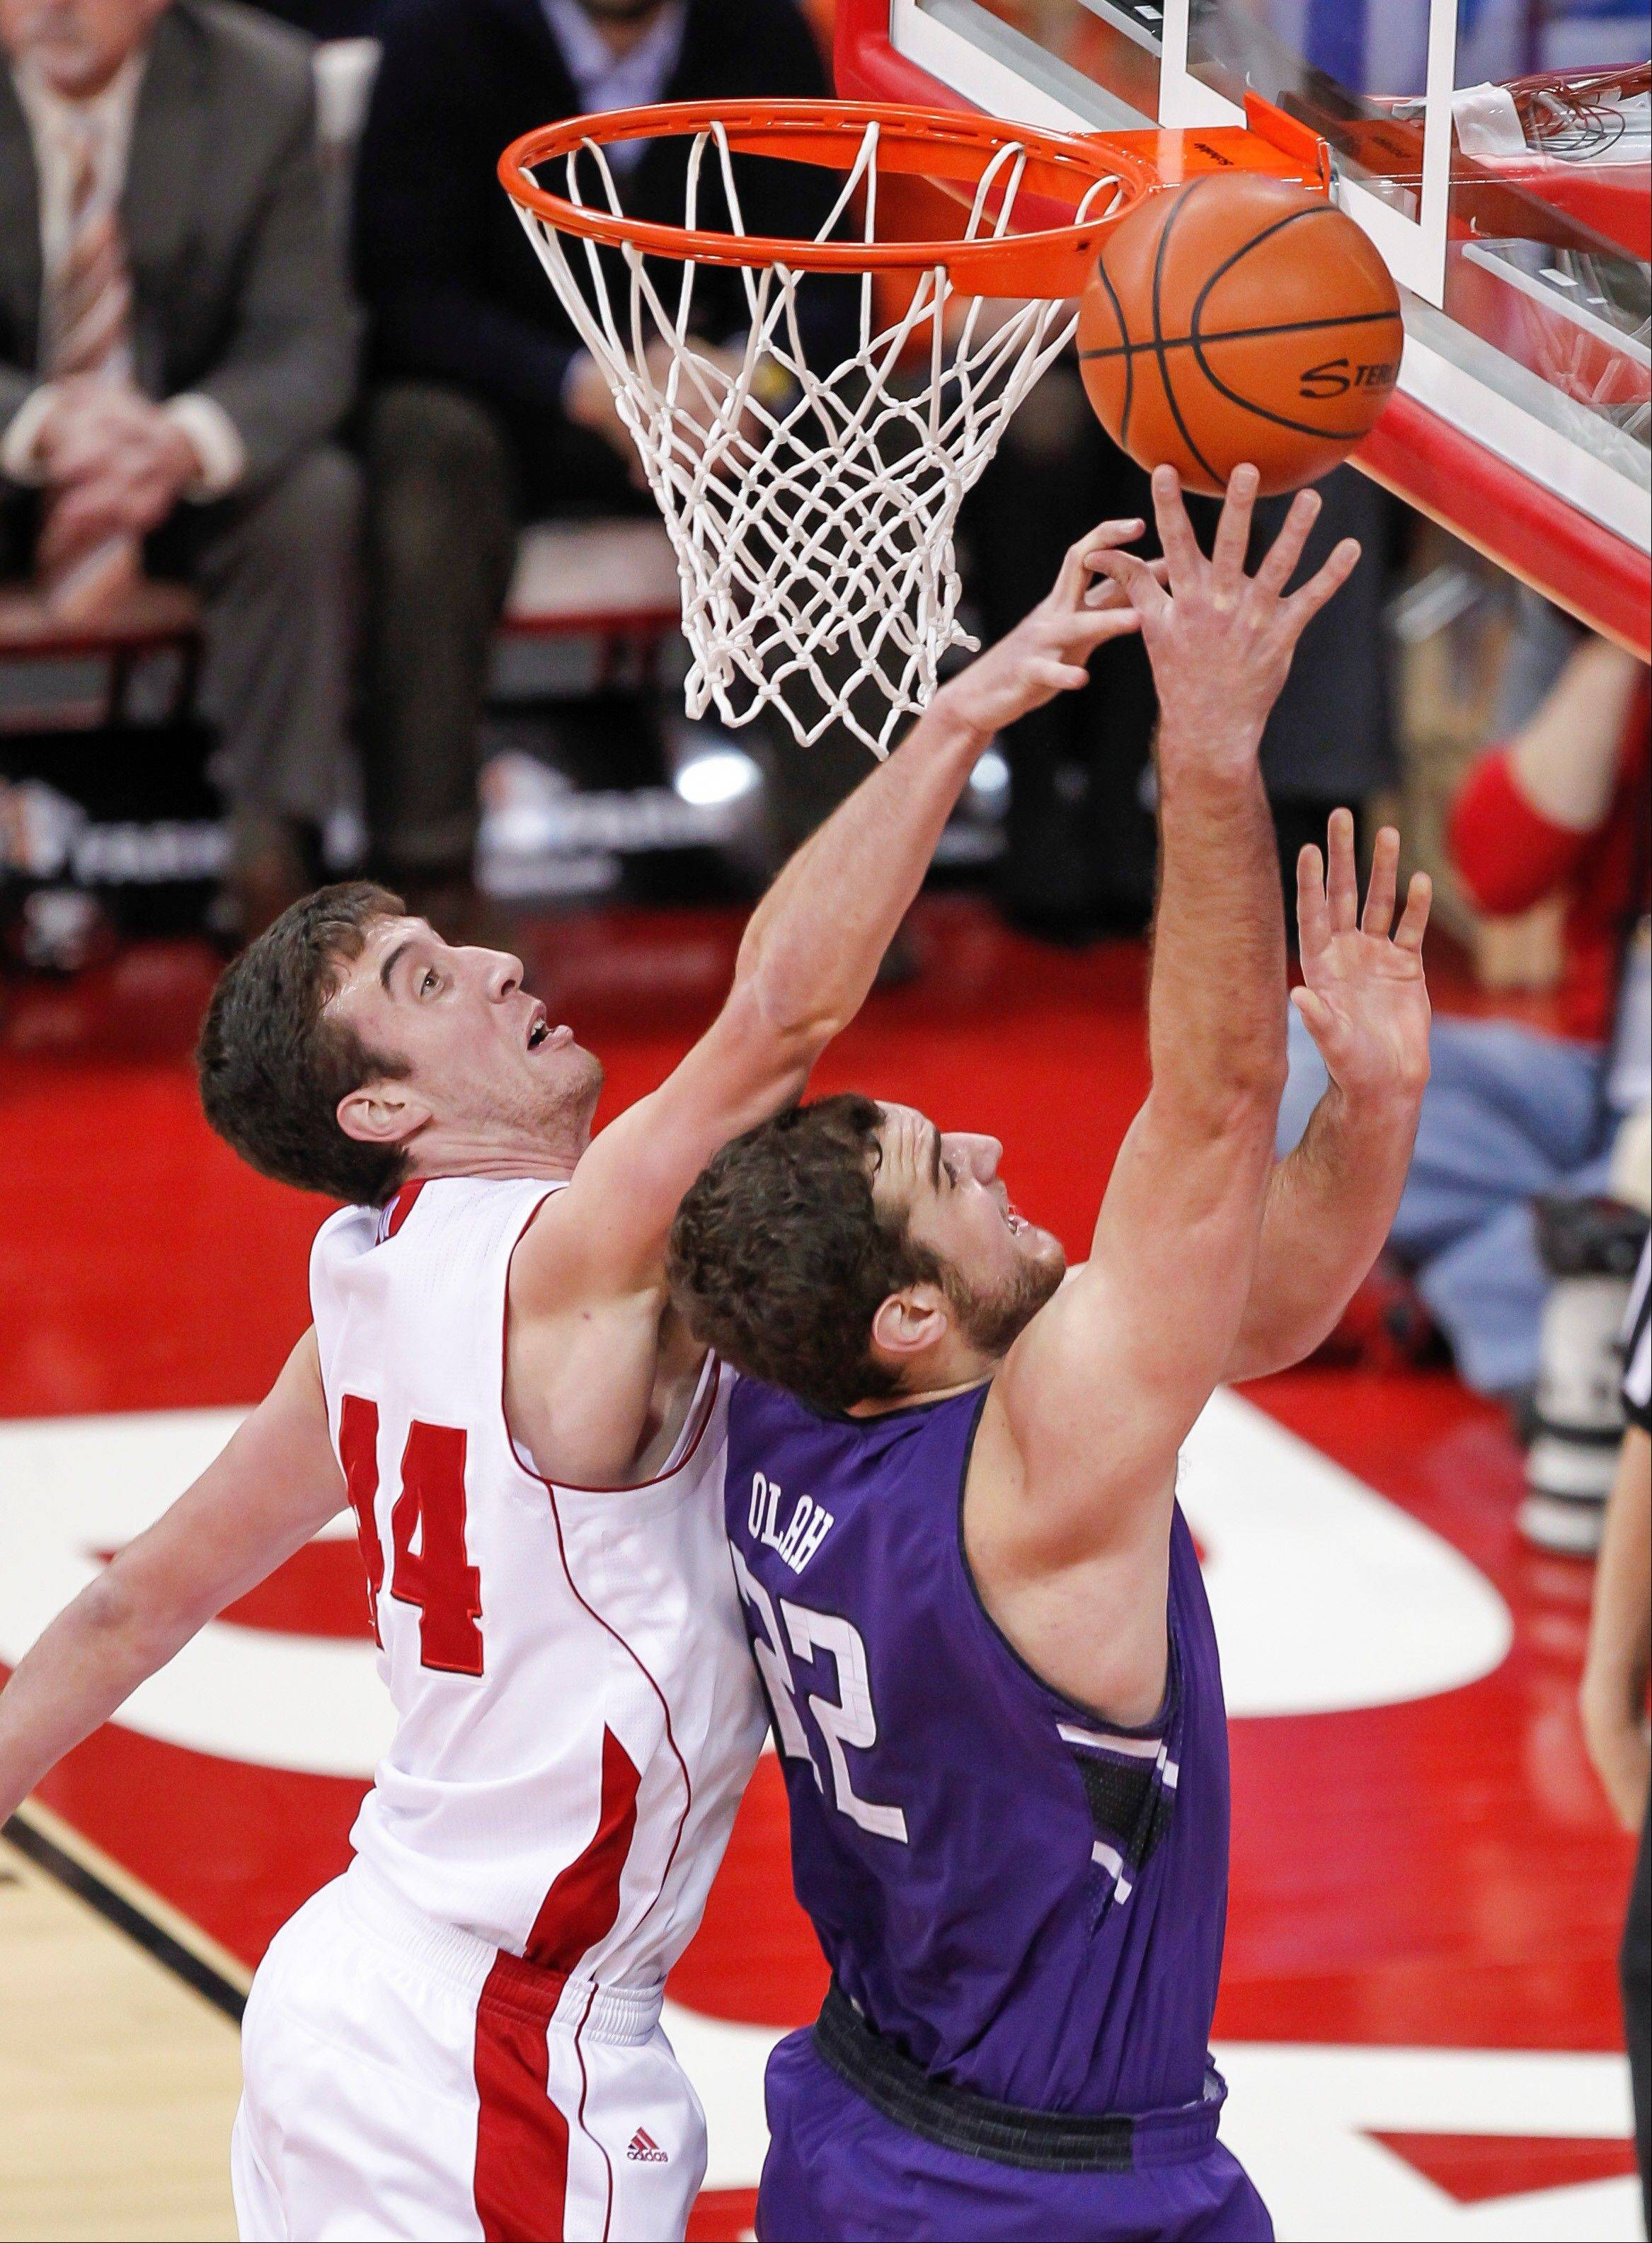 Wisconsin�s Frank Kaminsky, left, knocks the ball away from Northwestern�s Alex Olah during the first half of Wednesday�s game in Madison, Wis.